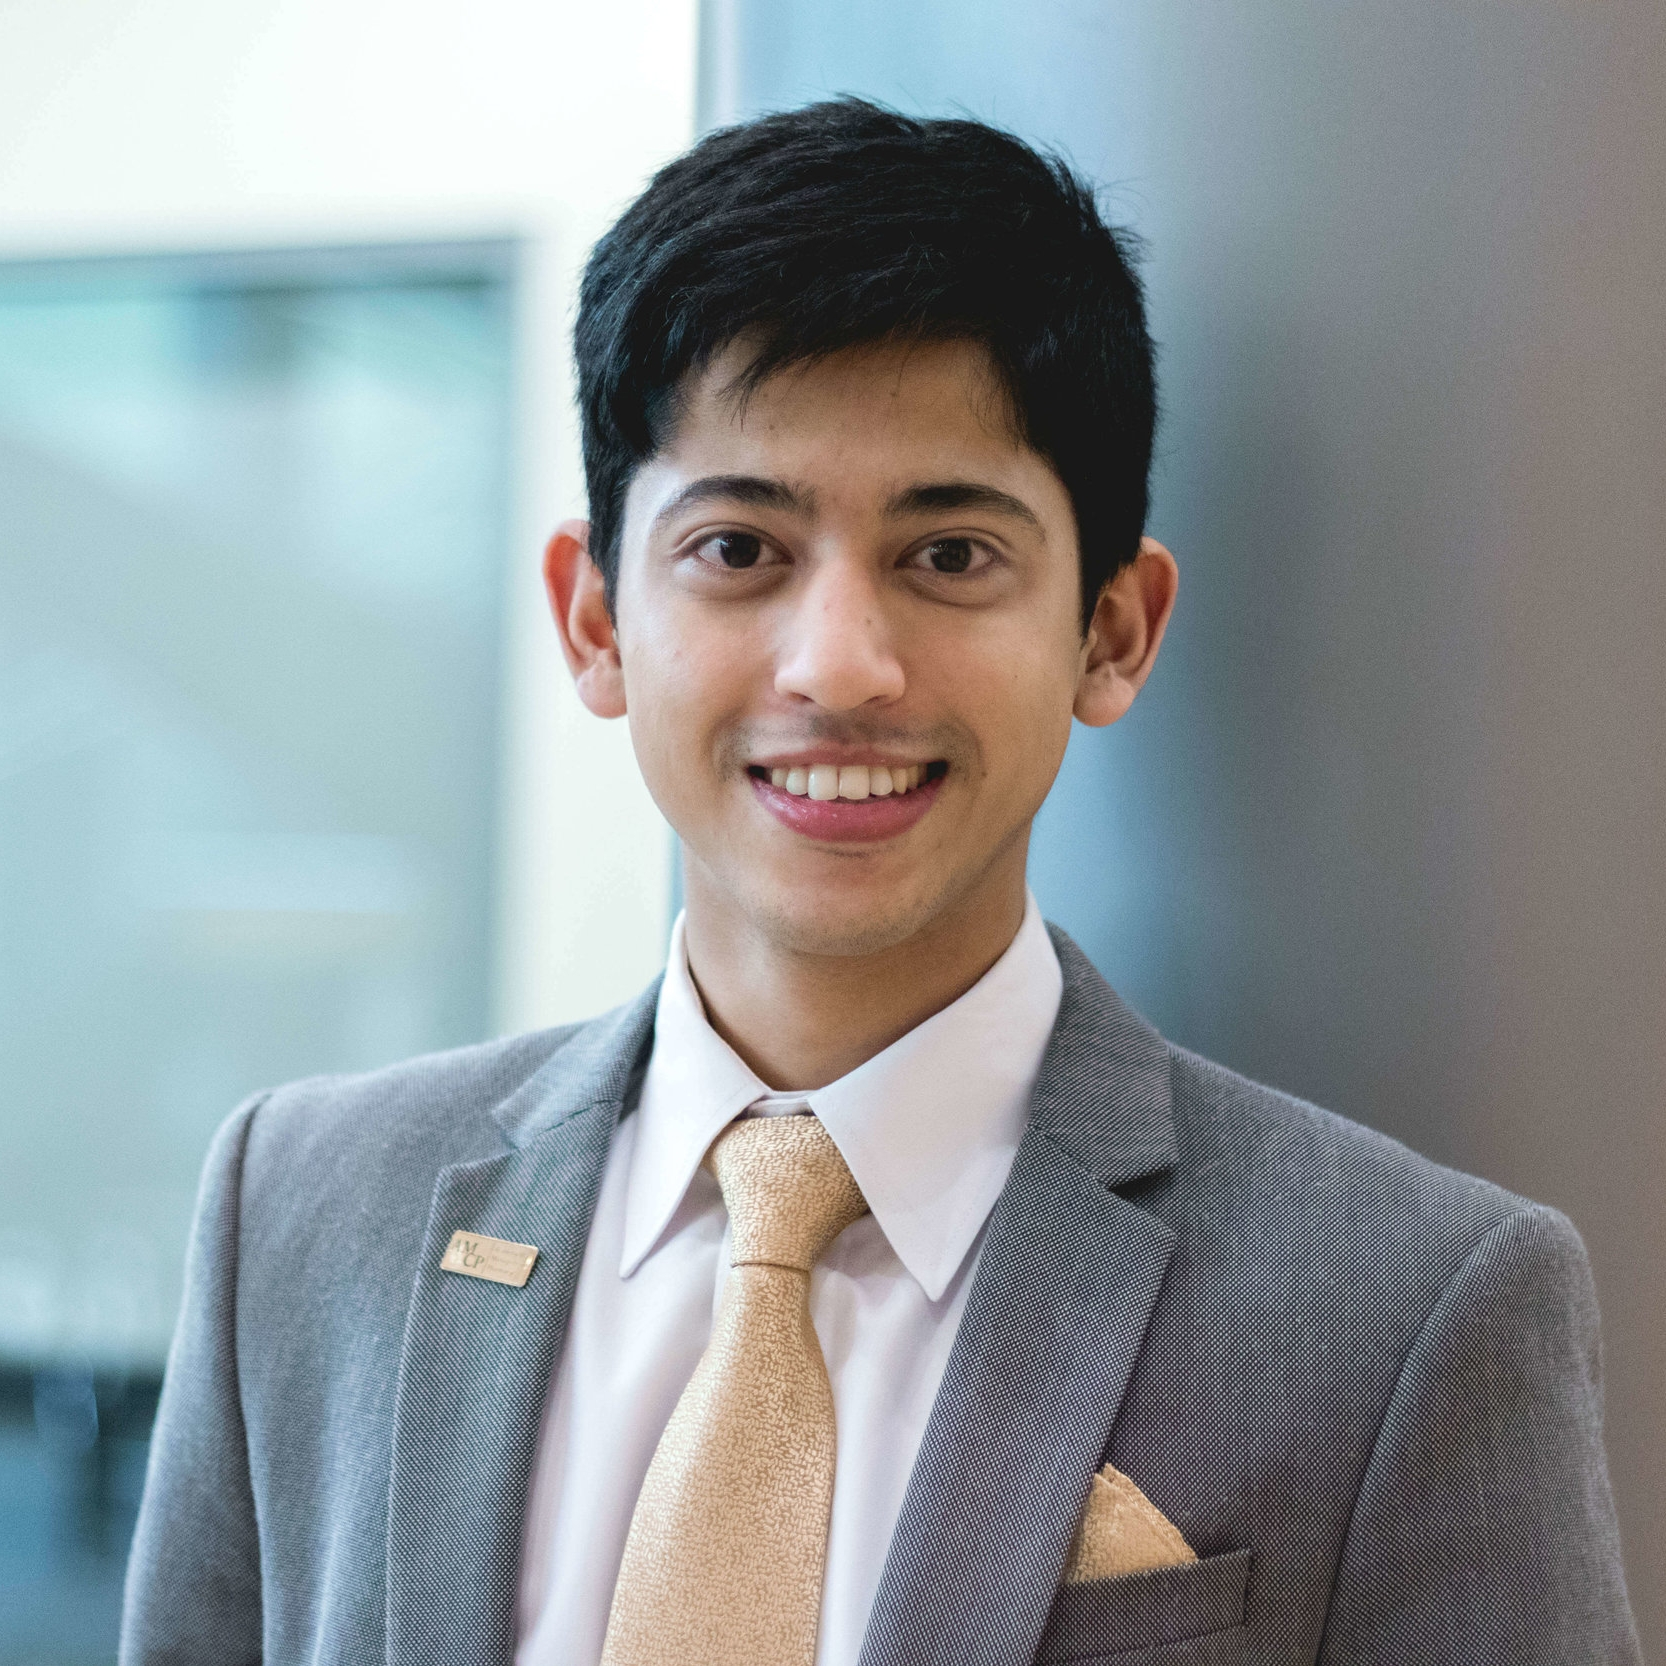 Nihal Narsipur, Pharm.D. Candidate 2019, serves on the Rutgers Academy of Managed Care Pharmacy Board of Directors, and is interested in pursuing a career in the pharmaceutical industry upon graduation.